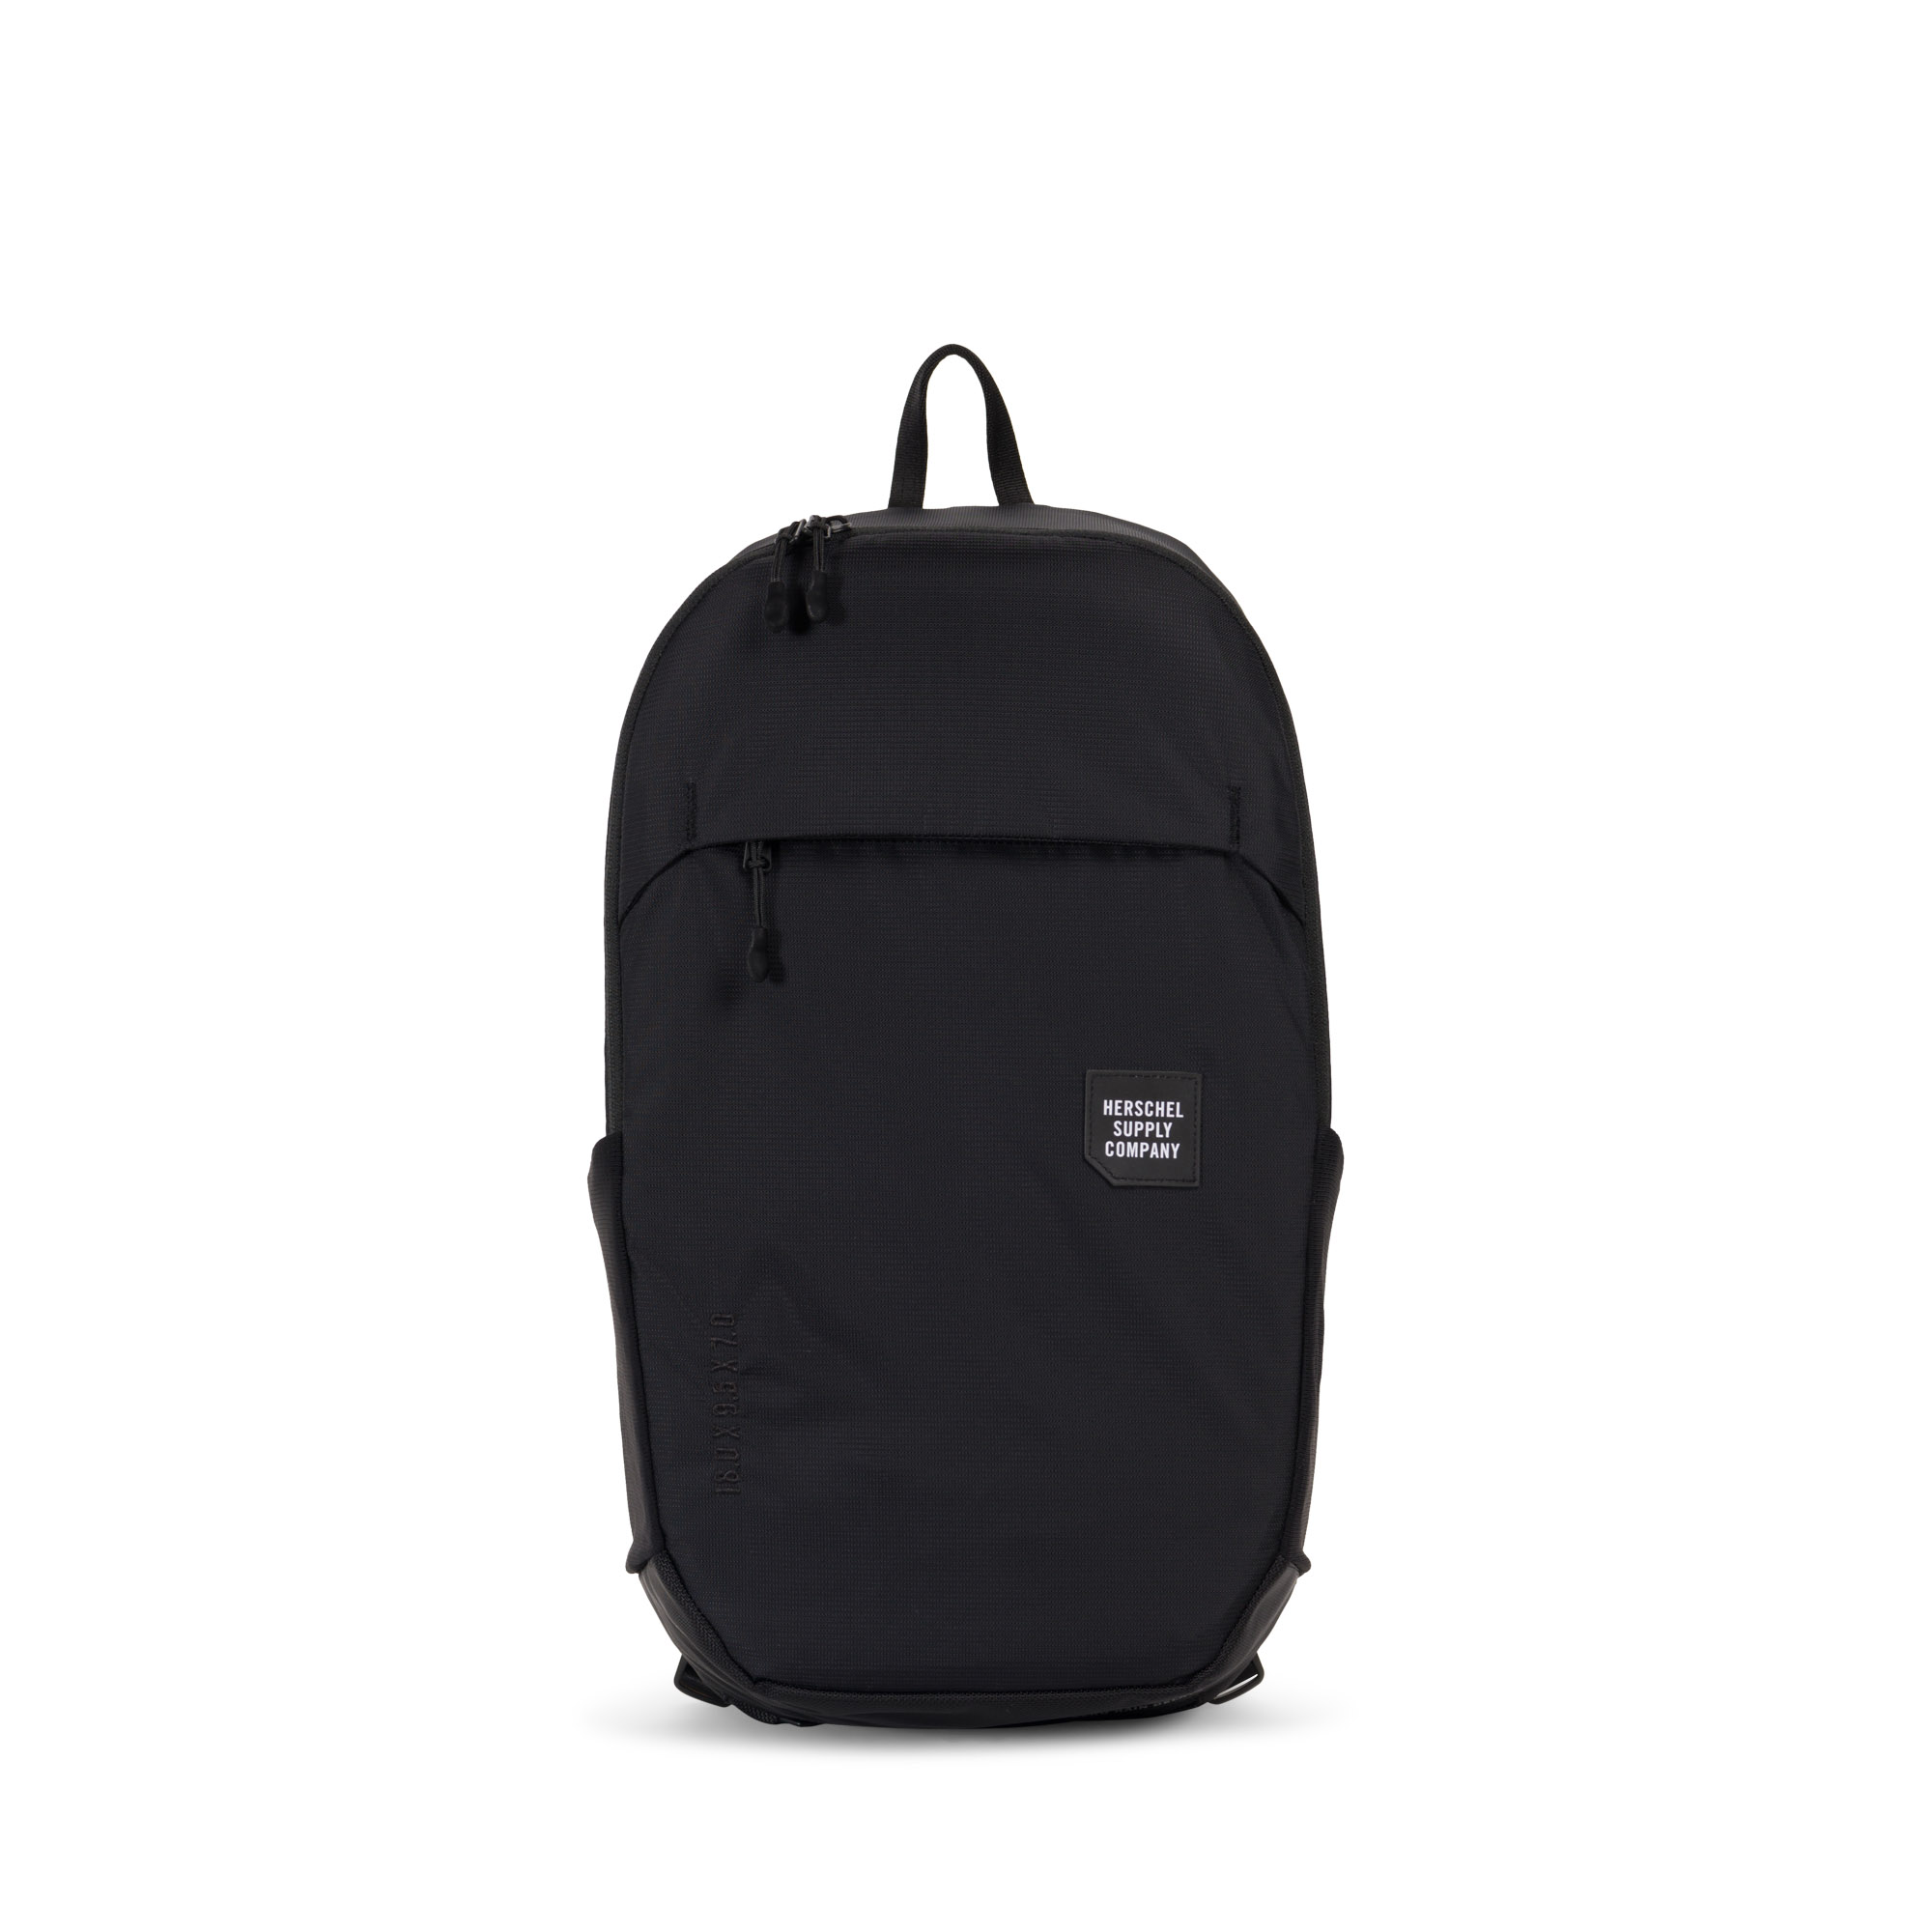 2644d403b321 Mammoth Backpack Medium